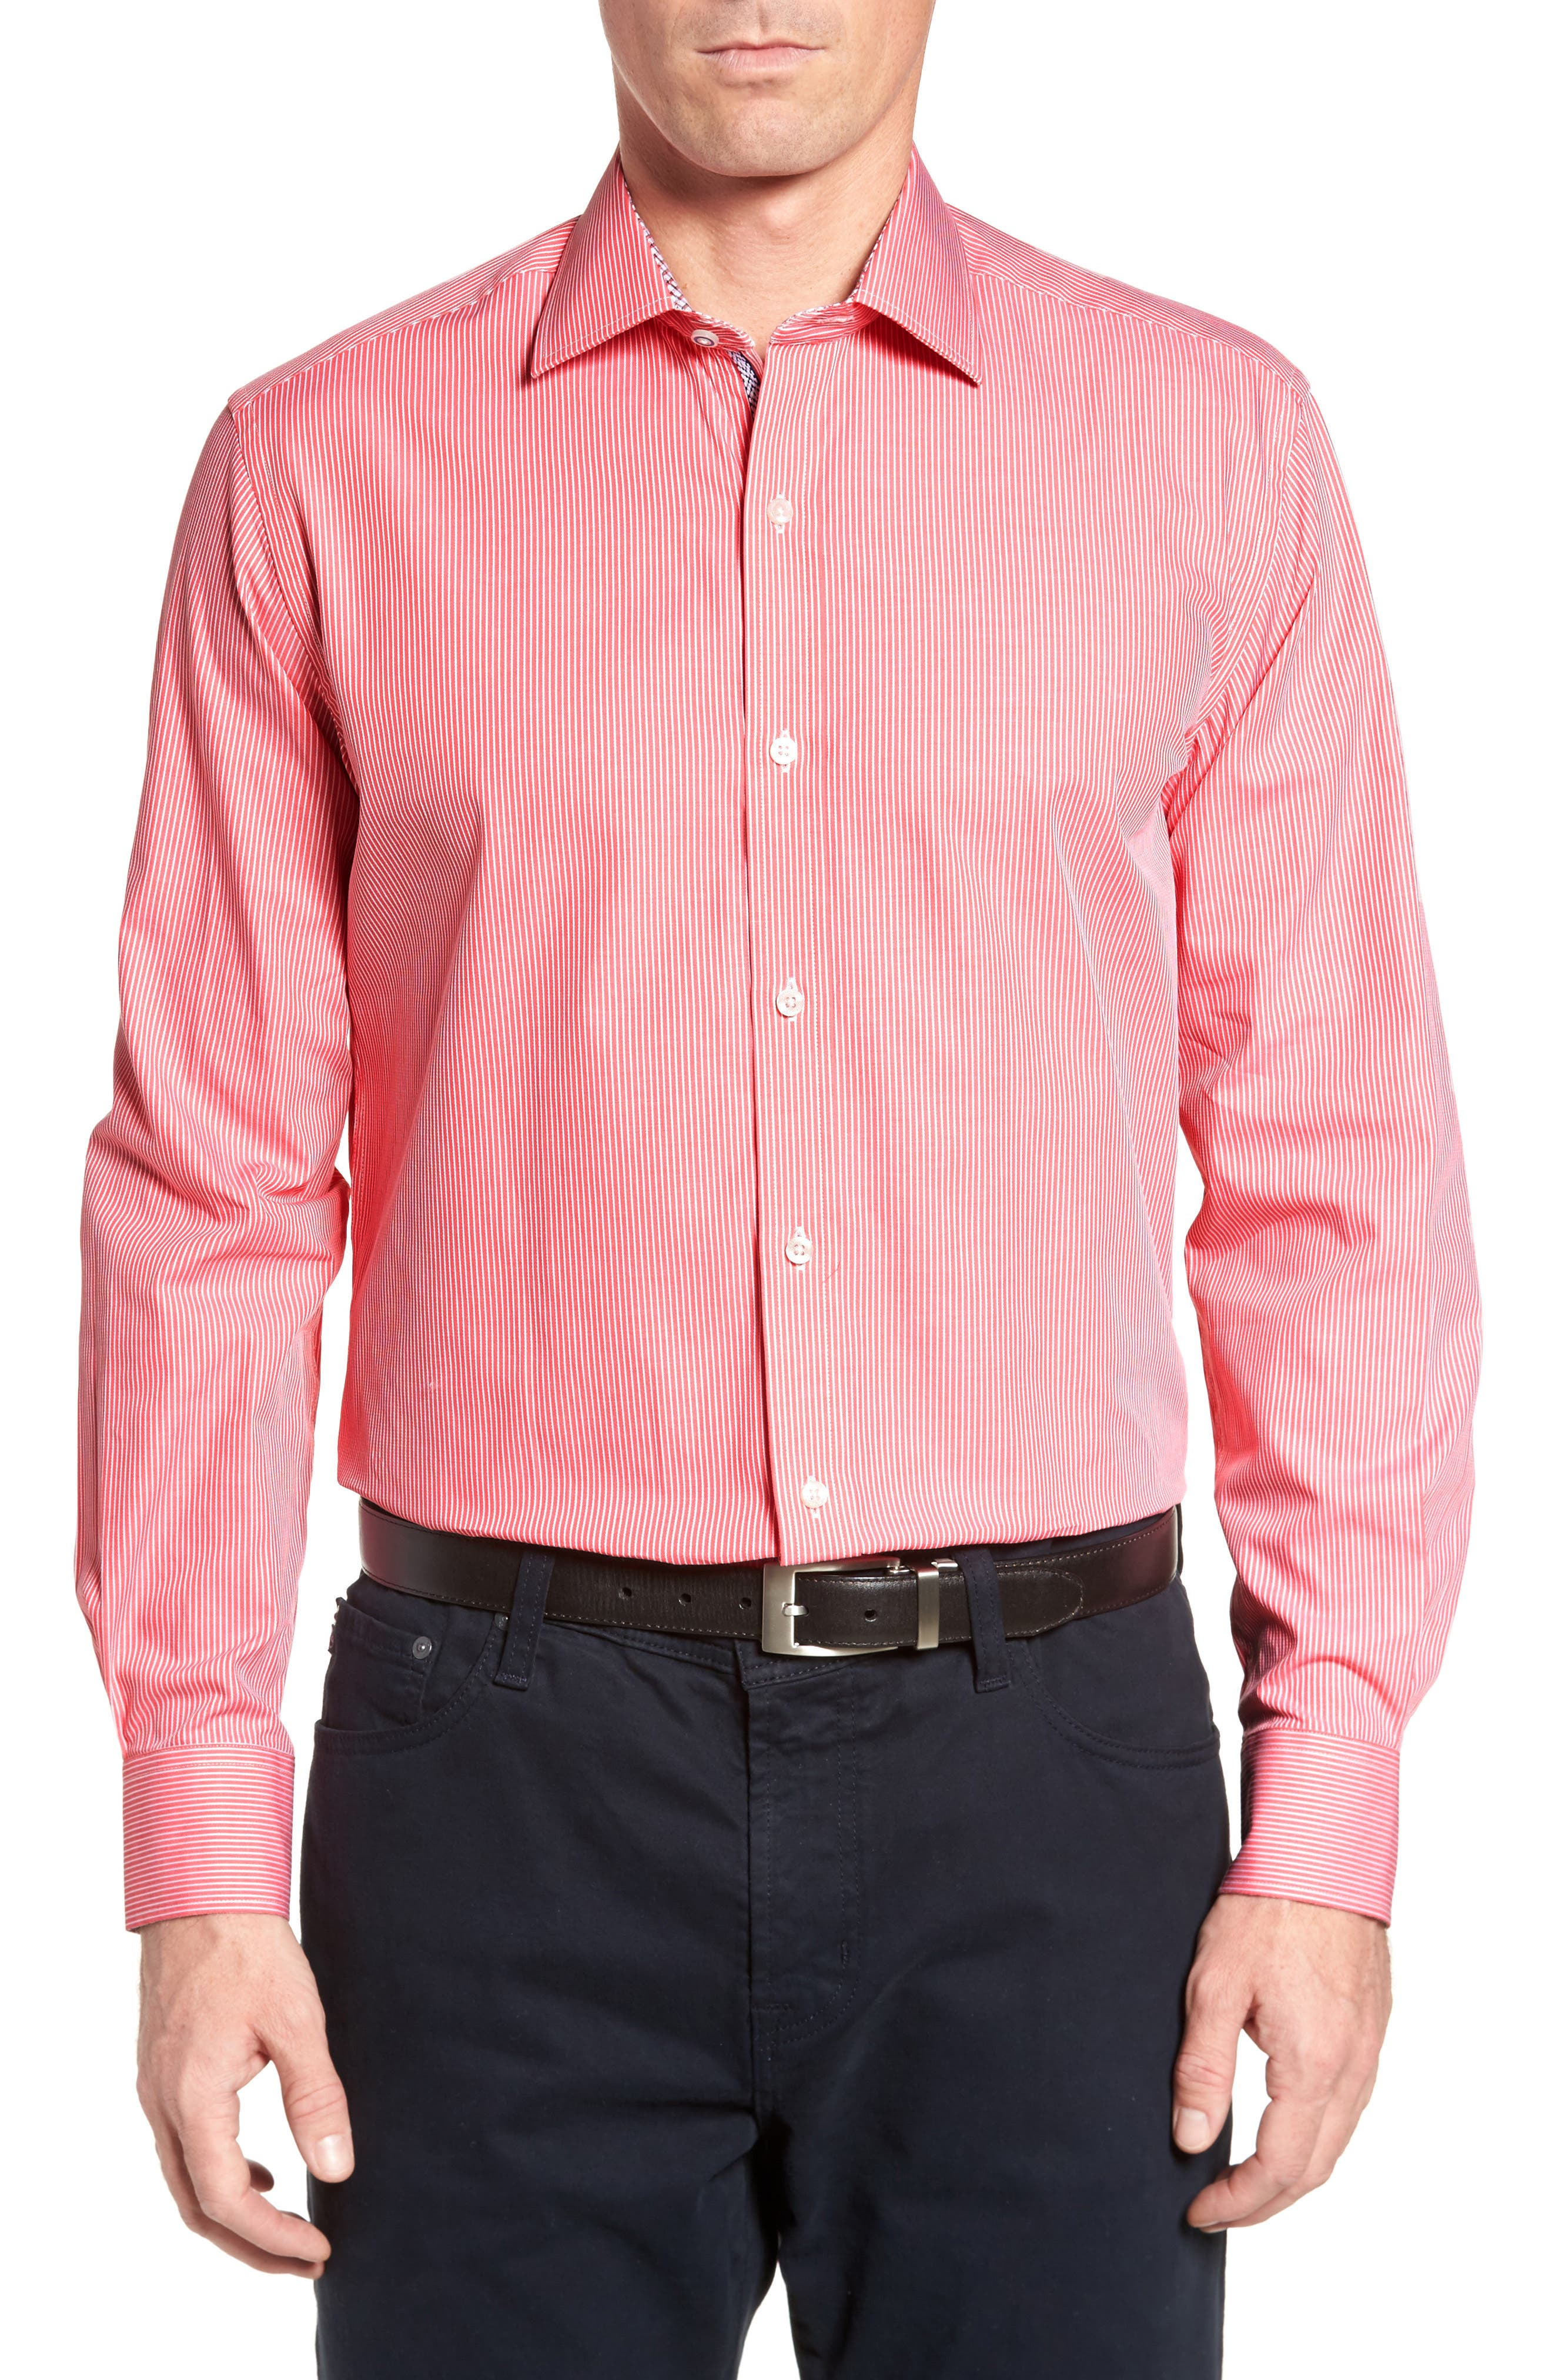 Oaksdale Stripe Sport Shirt,                         Main,                         color, 950